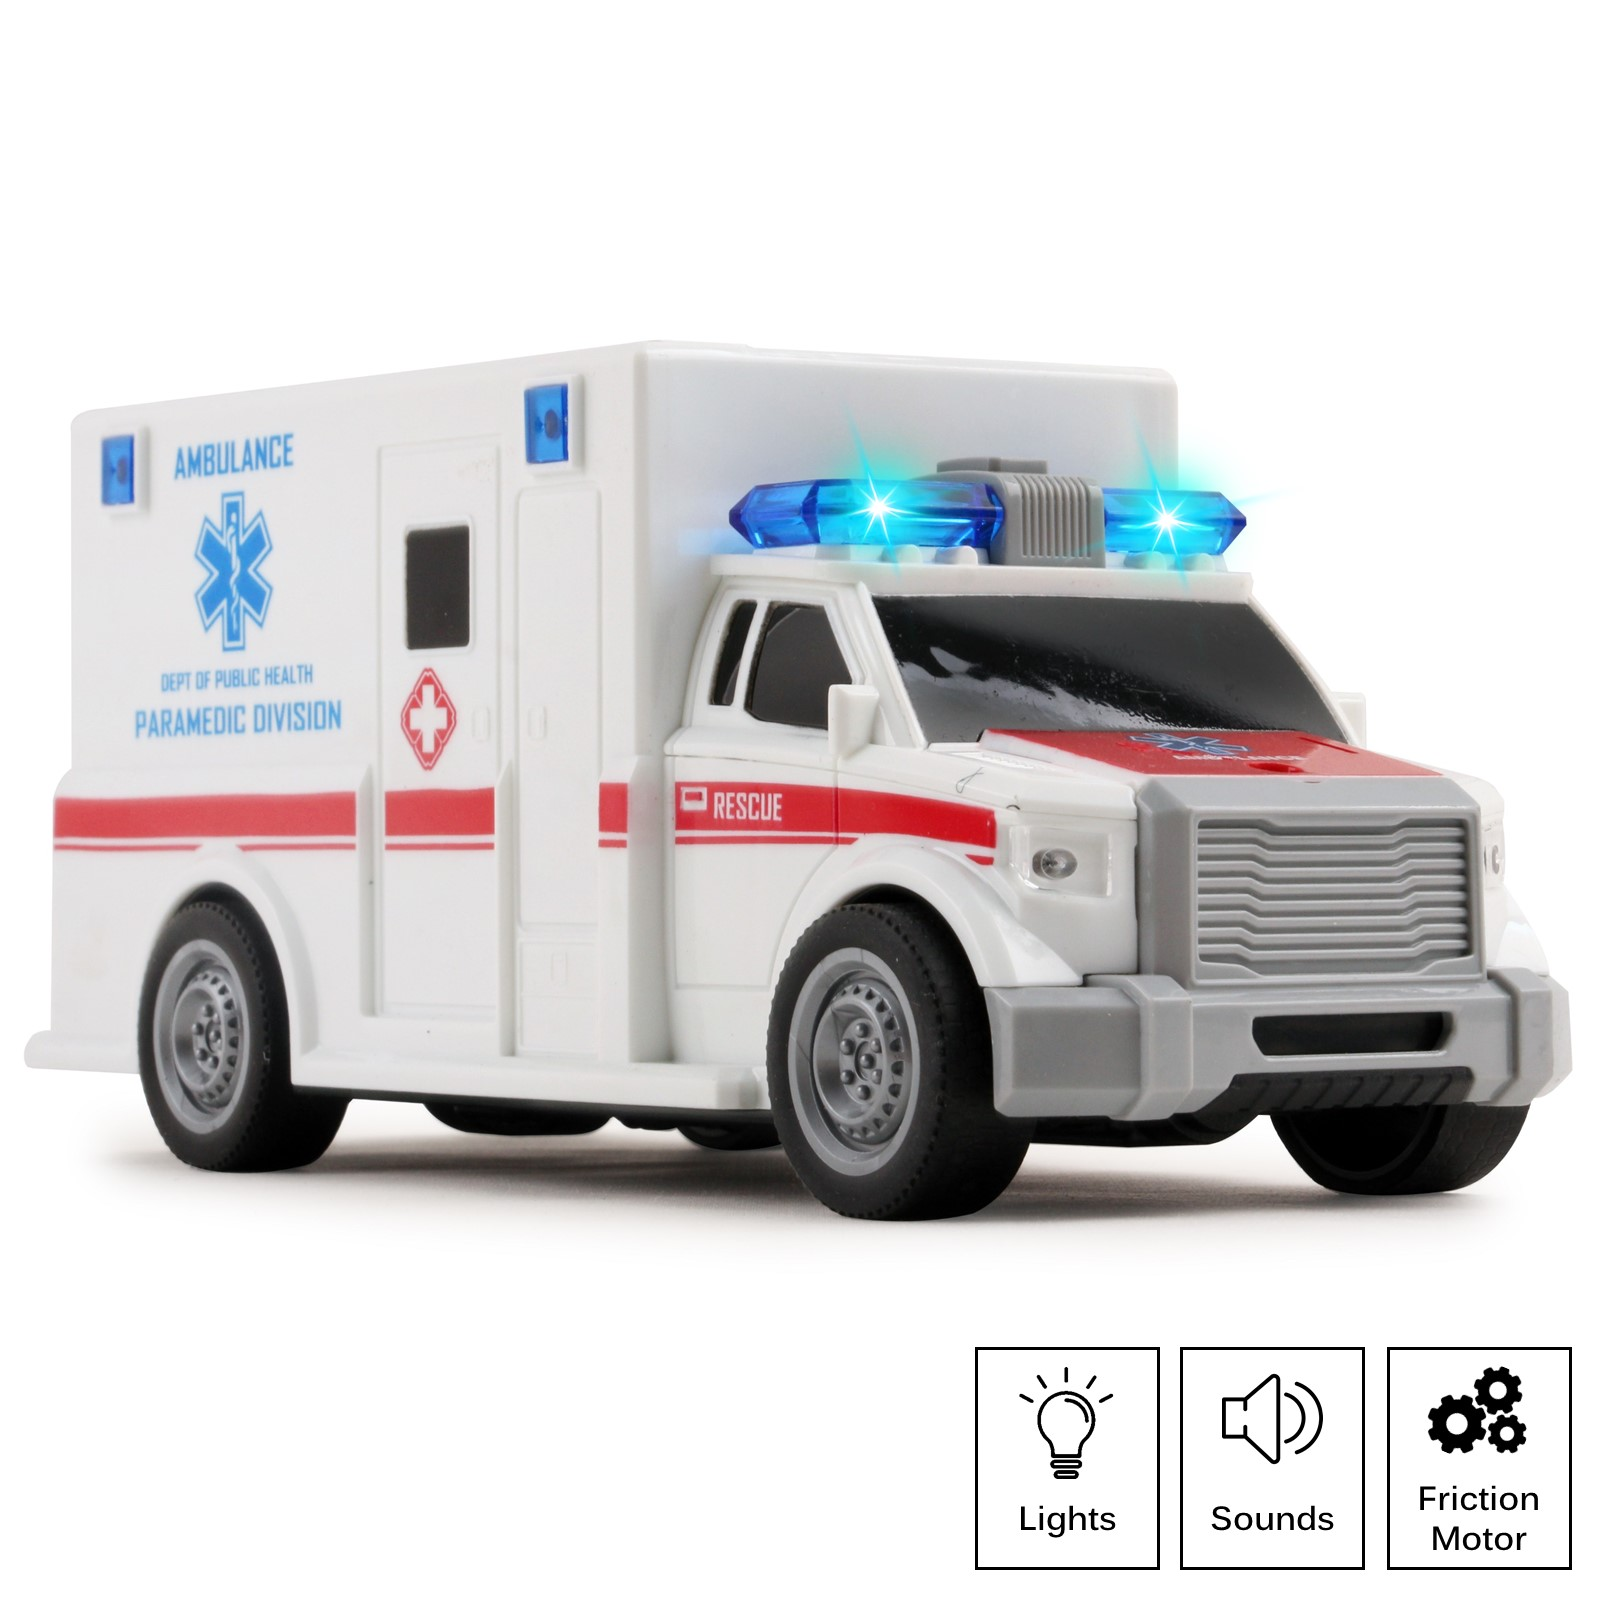 Rescue Ambulance Friction Powered 1:20 Scale Toy Car With Lights And Sounds Durable Kids Medical Transport Emergency Vehicle Push And Go Pretend Play Van Great Gift For Children Boys Girls